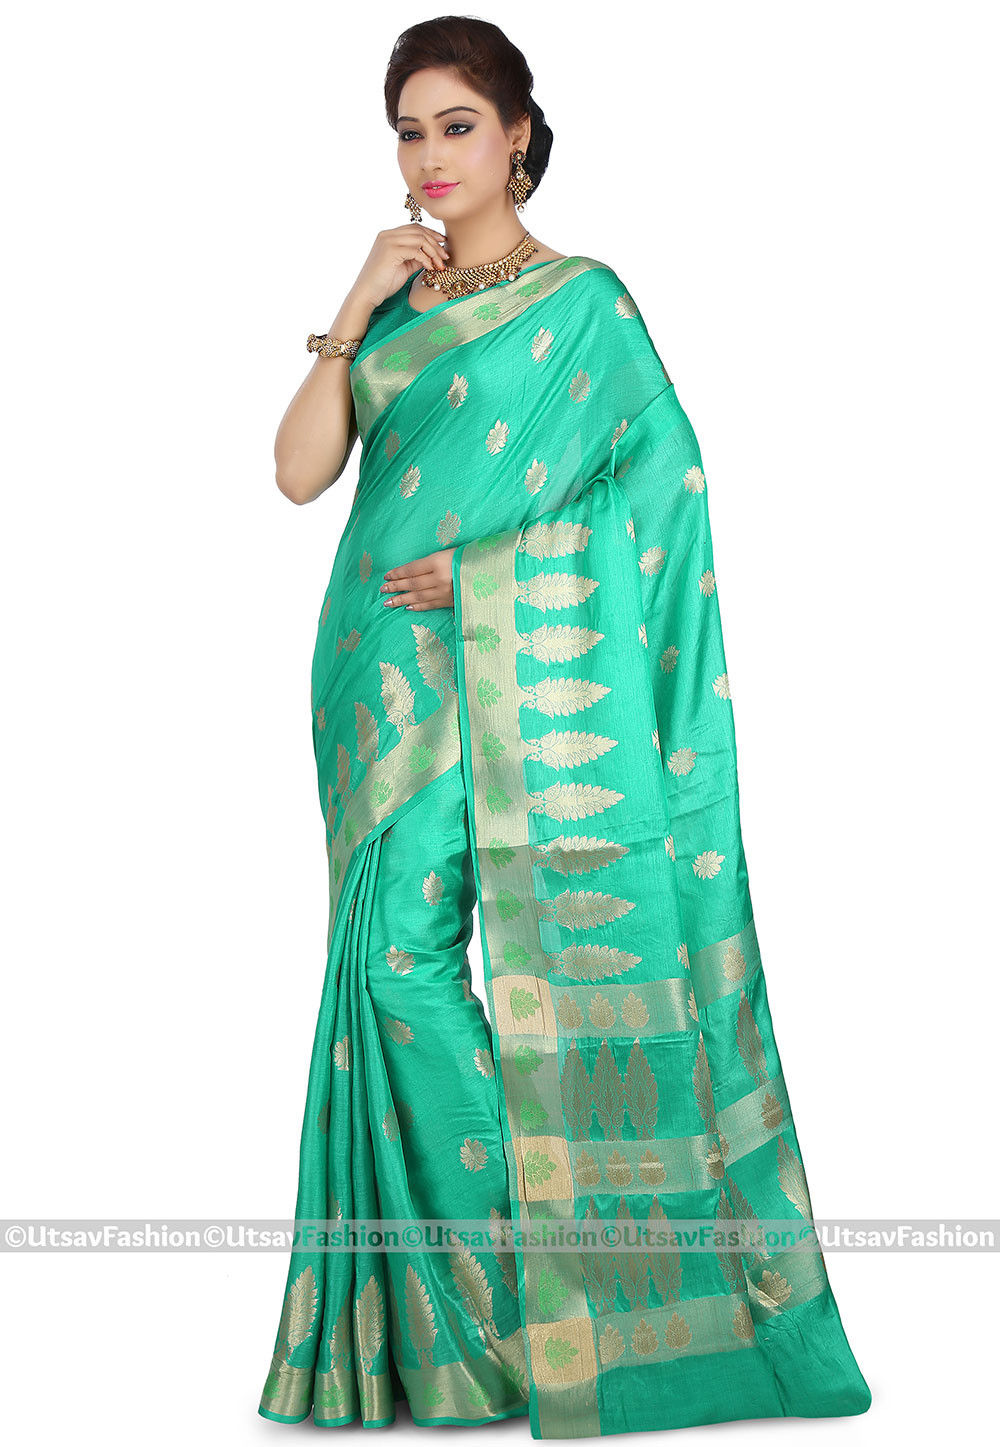 Woven Pure Tussar Silk Saree in Teal Green